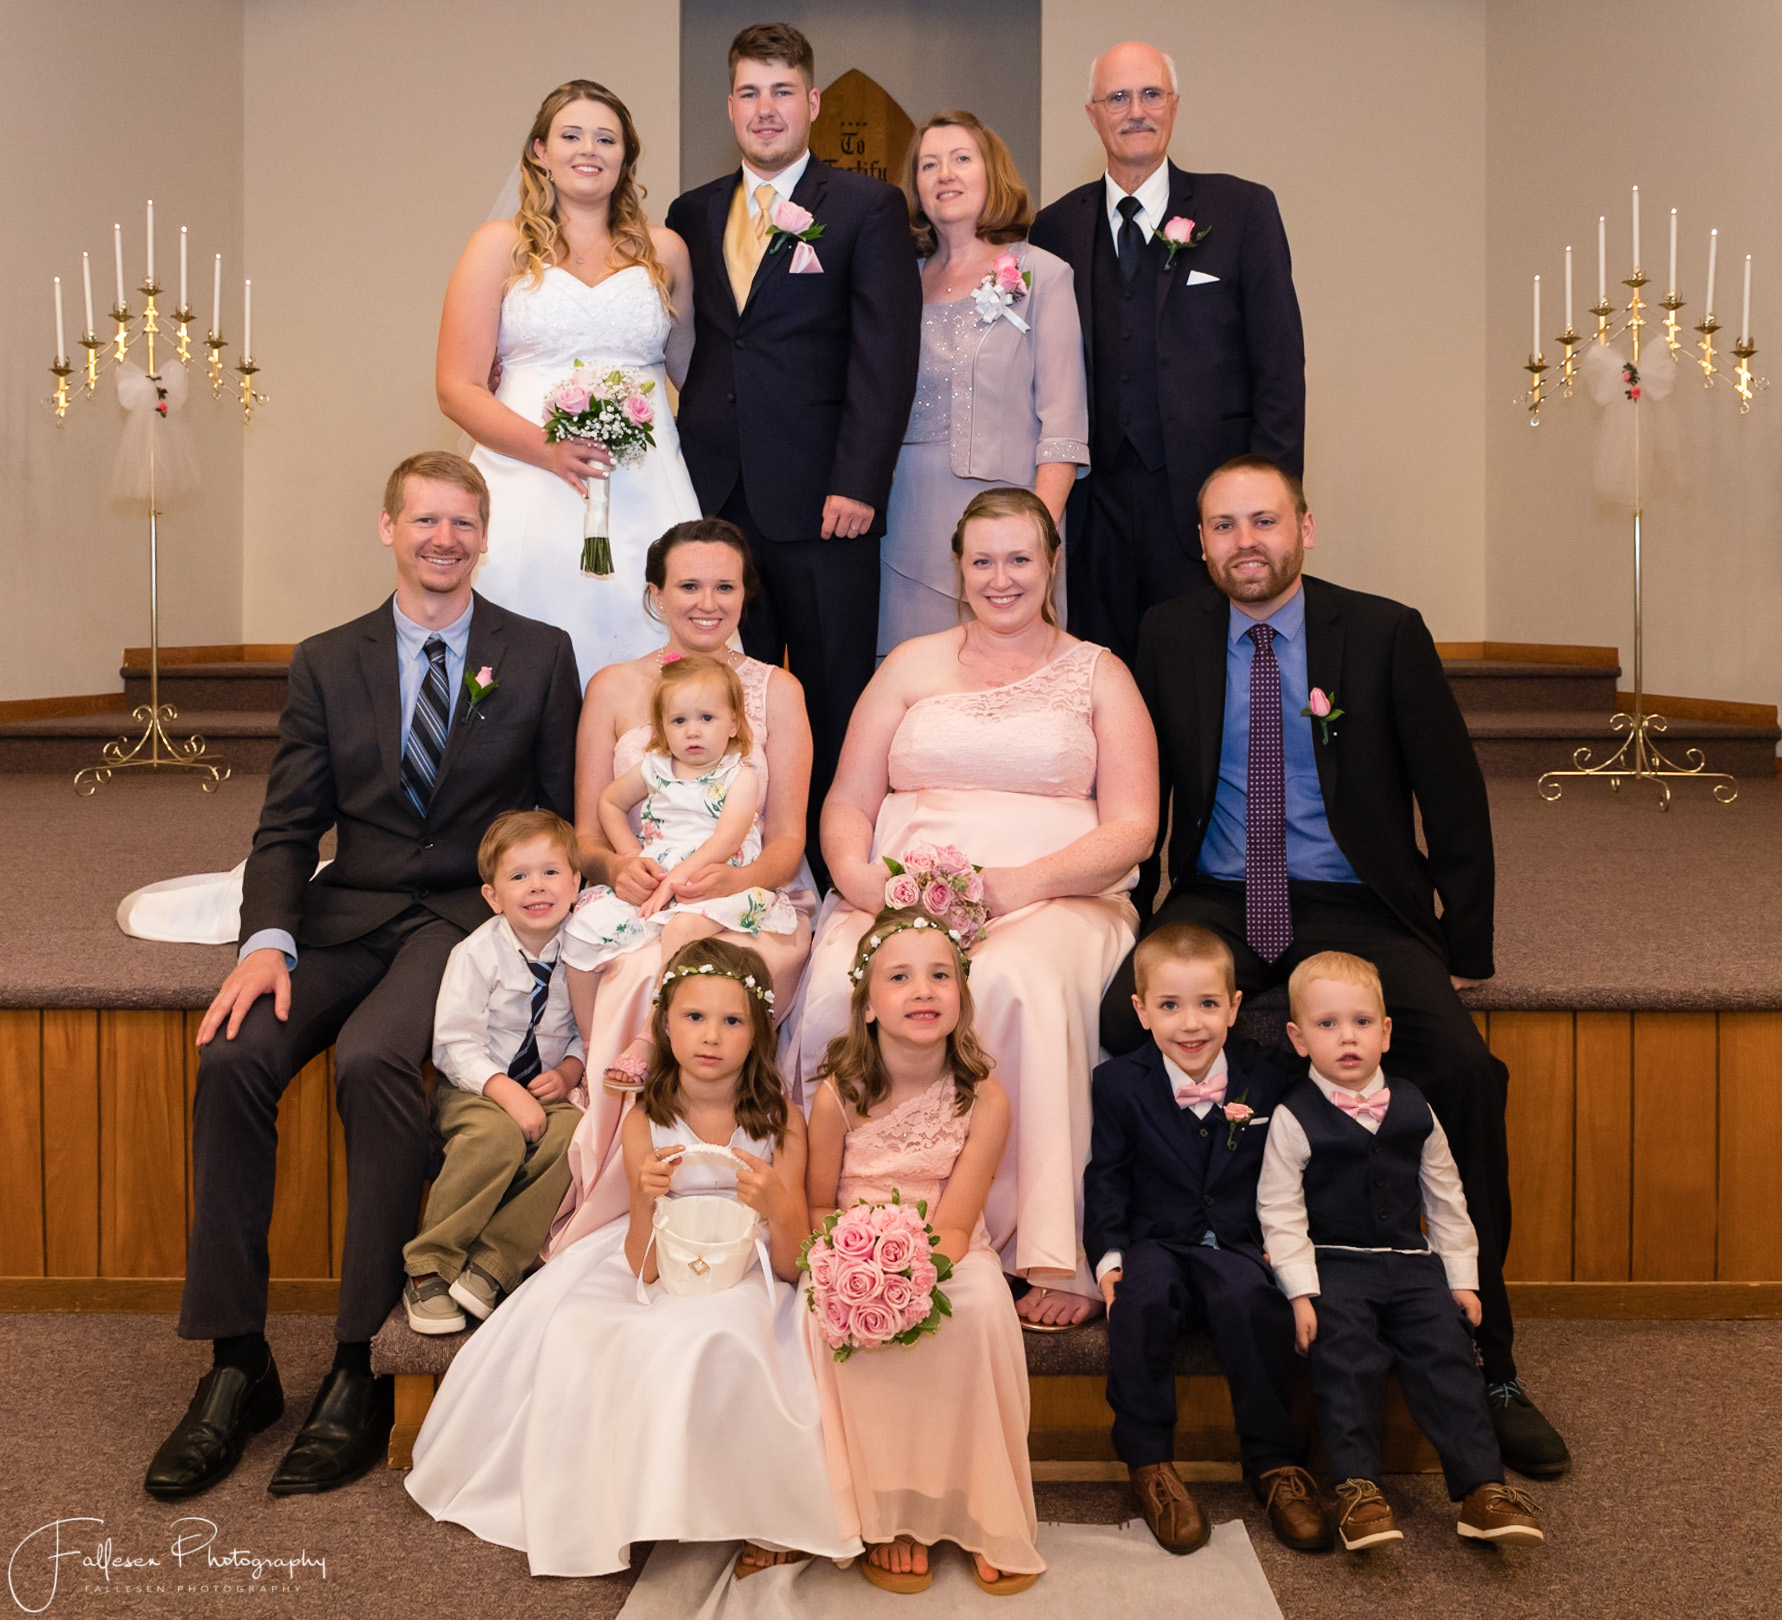 Lee Cliver Wedding, Grace Baptist Church, Brockport NY by Fallesen Photography